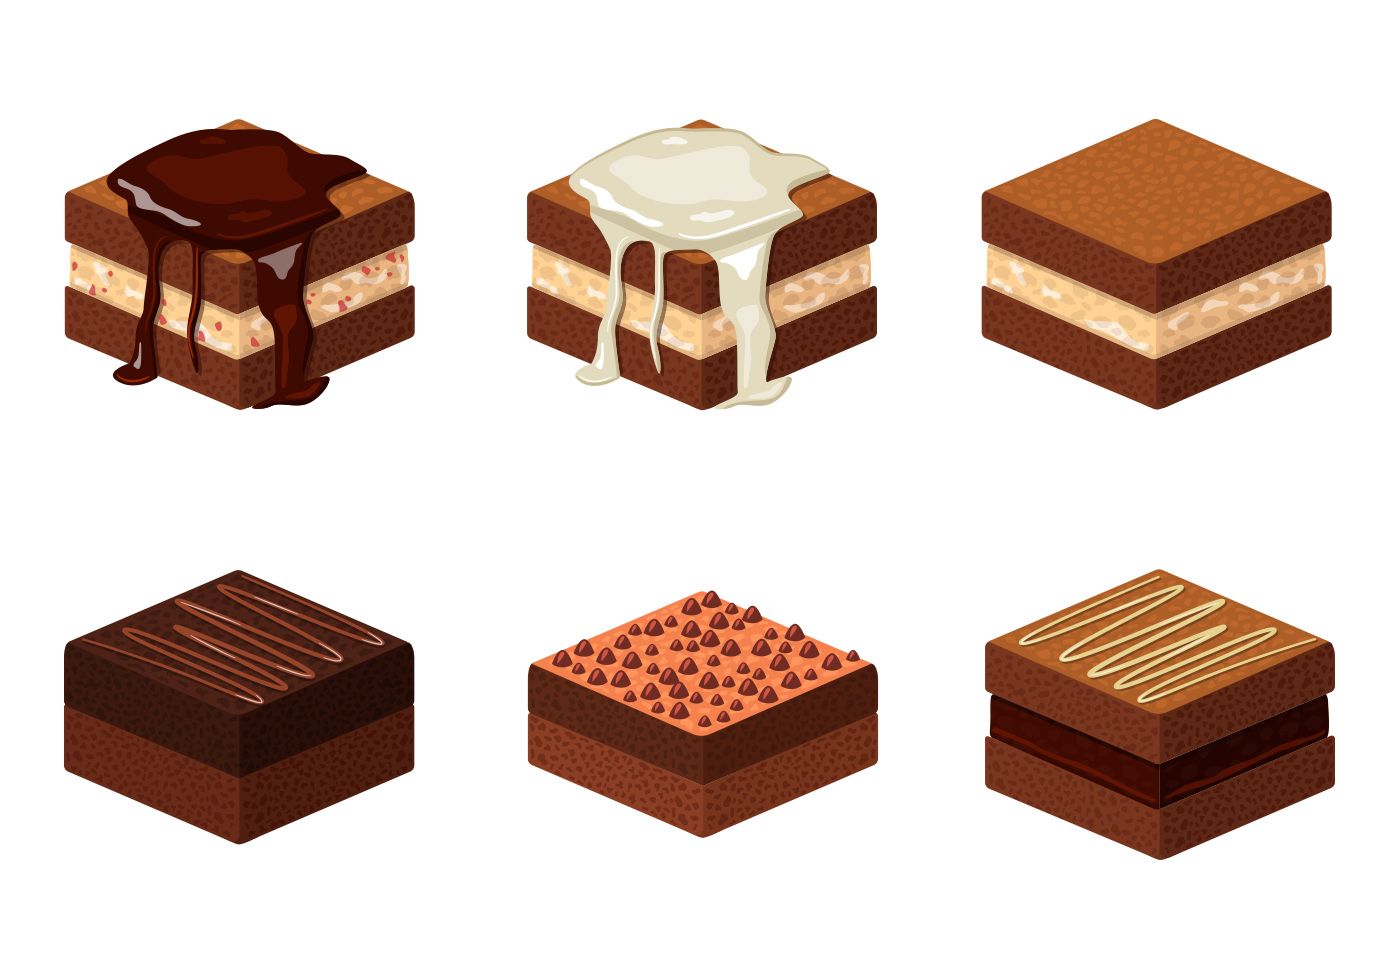 brownie illustration download free vector art stock